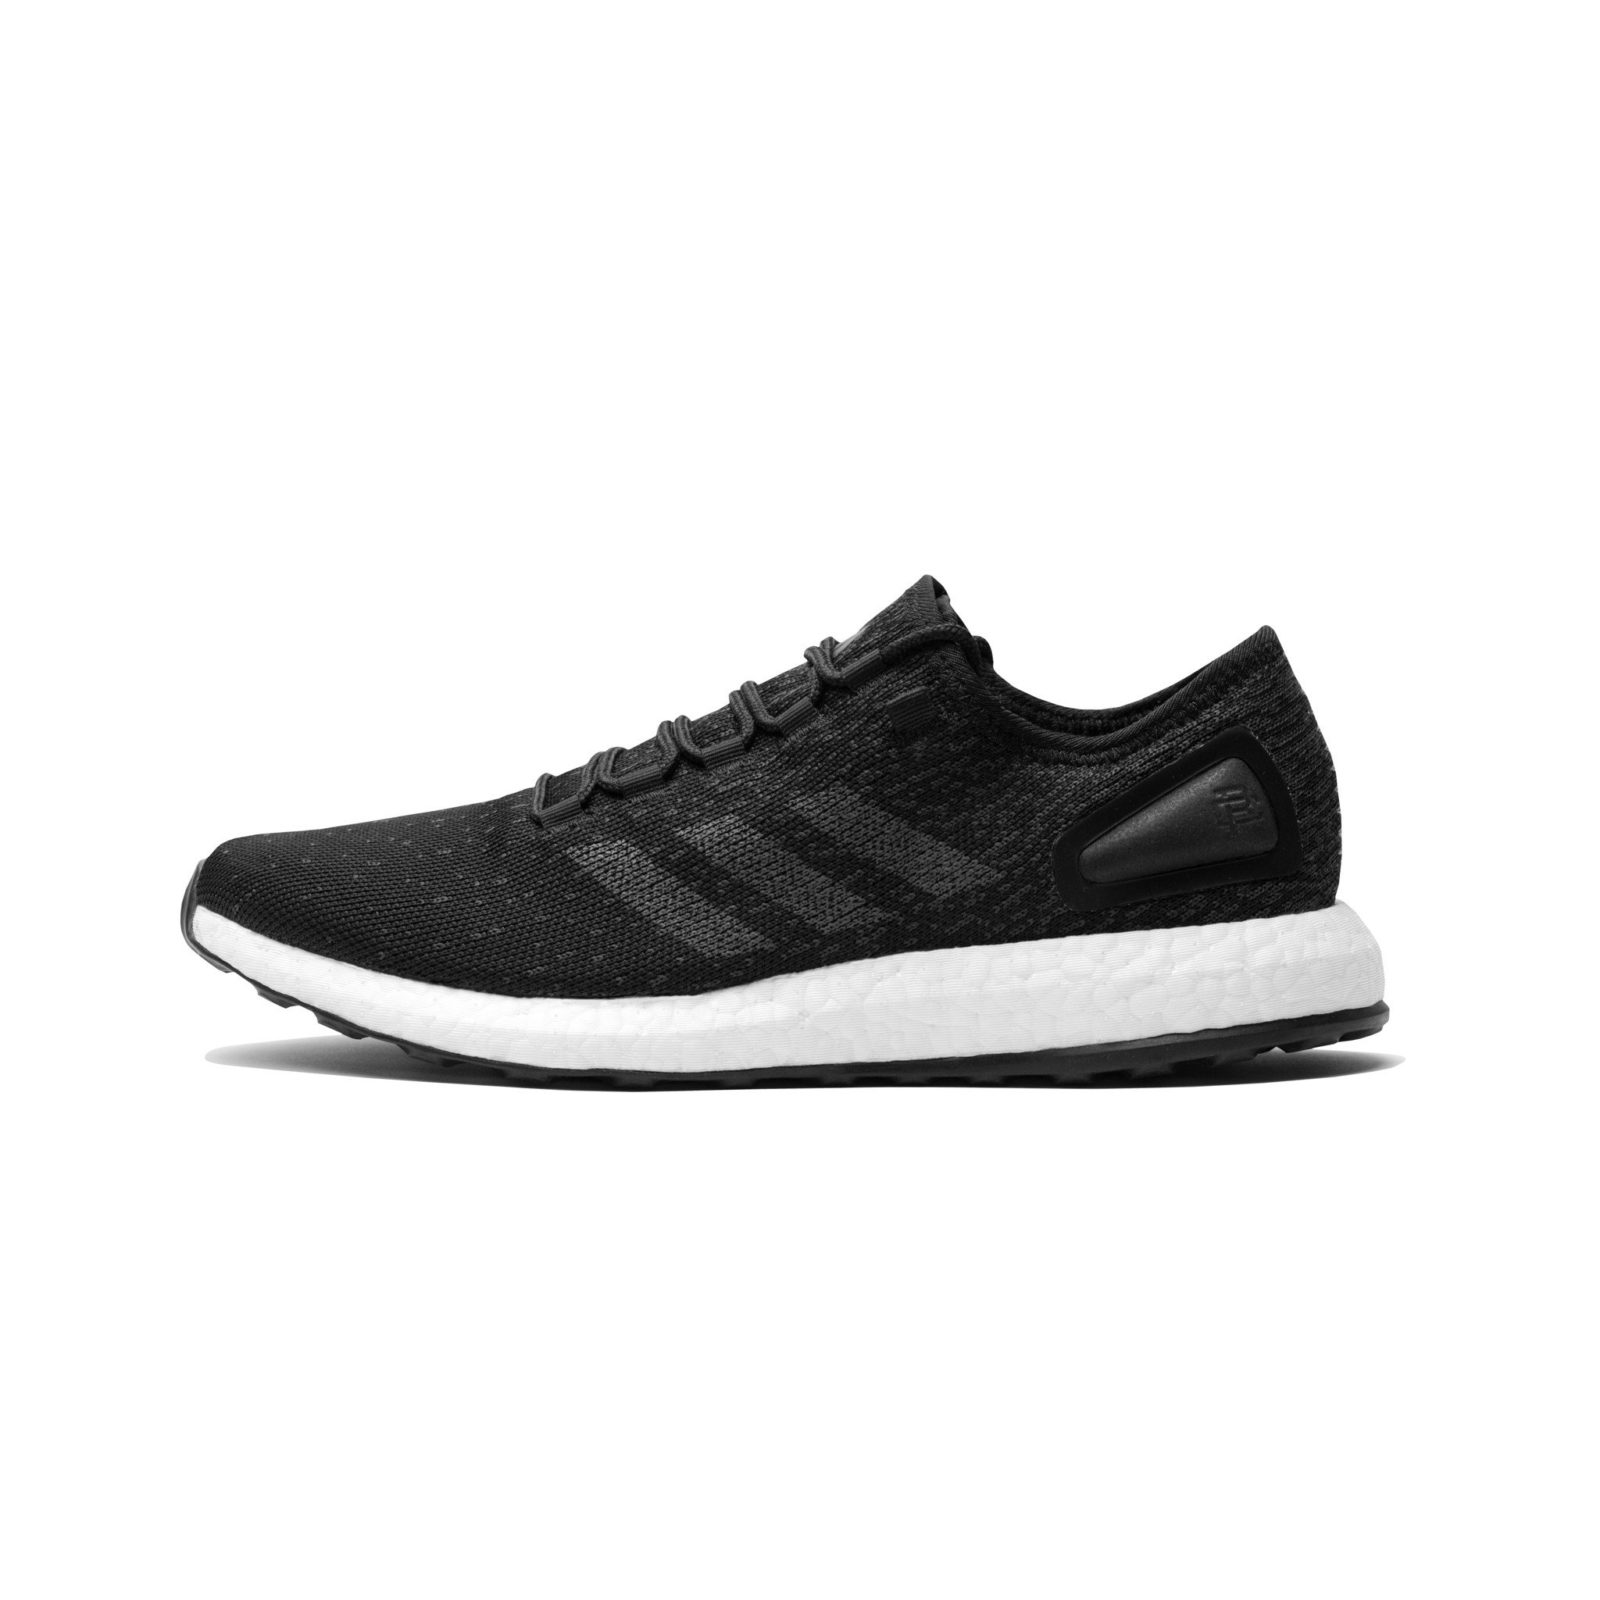 REIGNING CHAMP ADIDAS ATHLETICS PUREBOOST BLACK